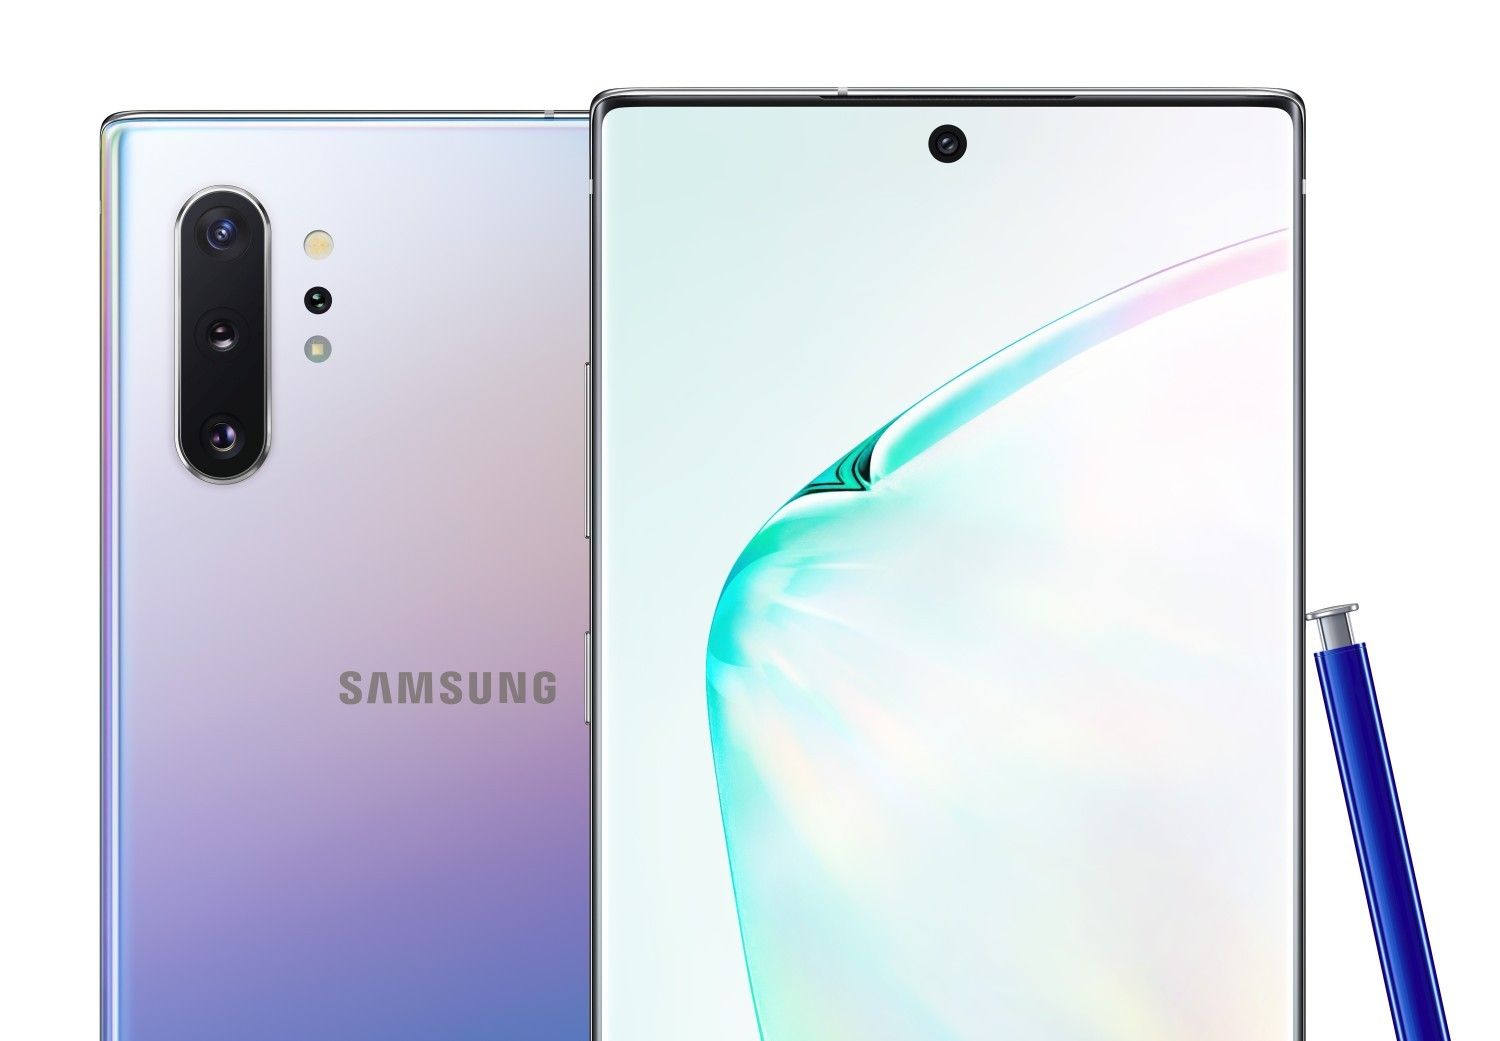 Galaxy Note 10 Plus update